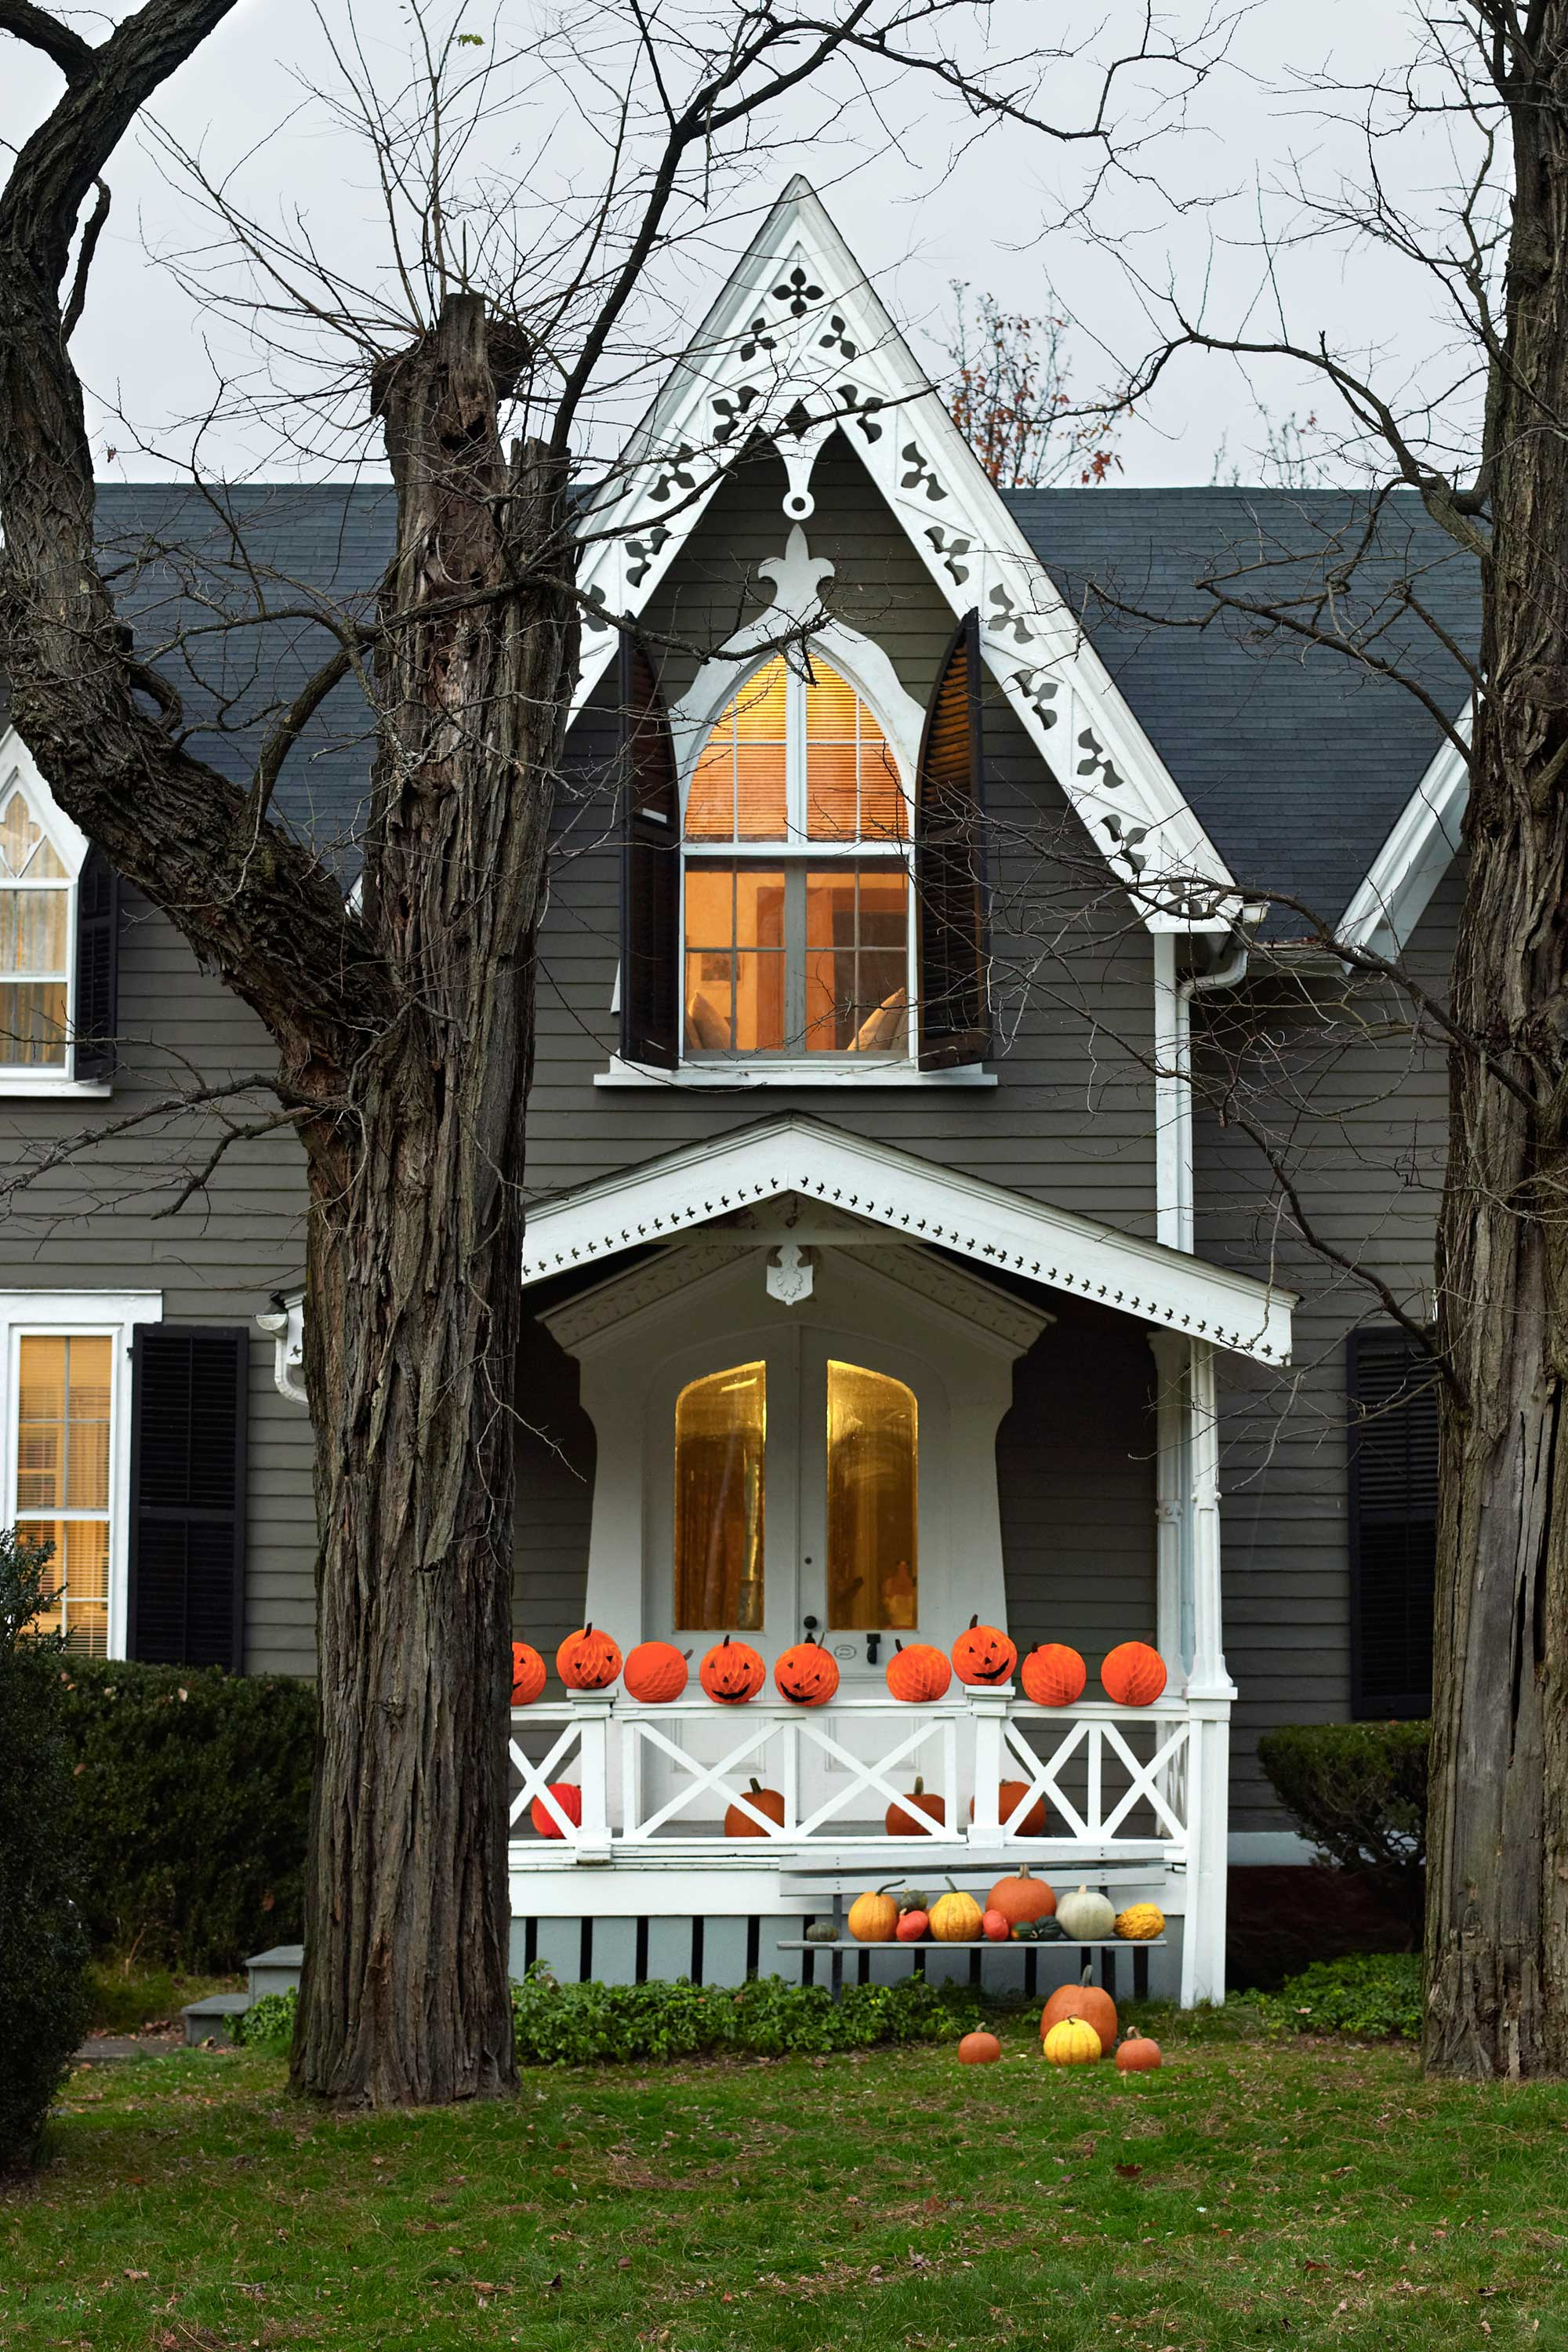 Halloween front garden ideas - 30 Best Outdoor Halloween Decoration Ideas Easy Halloween Yard And Porch Decor